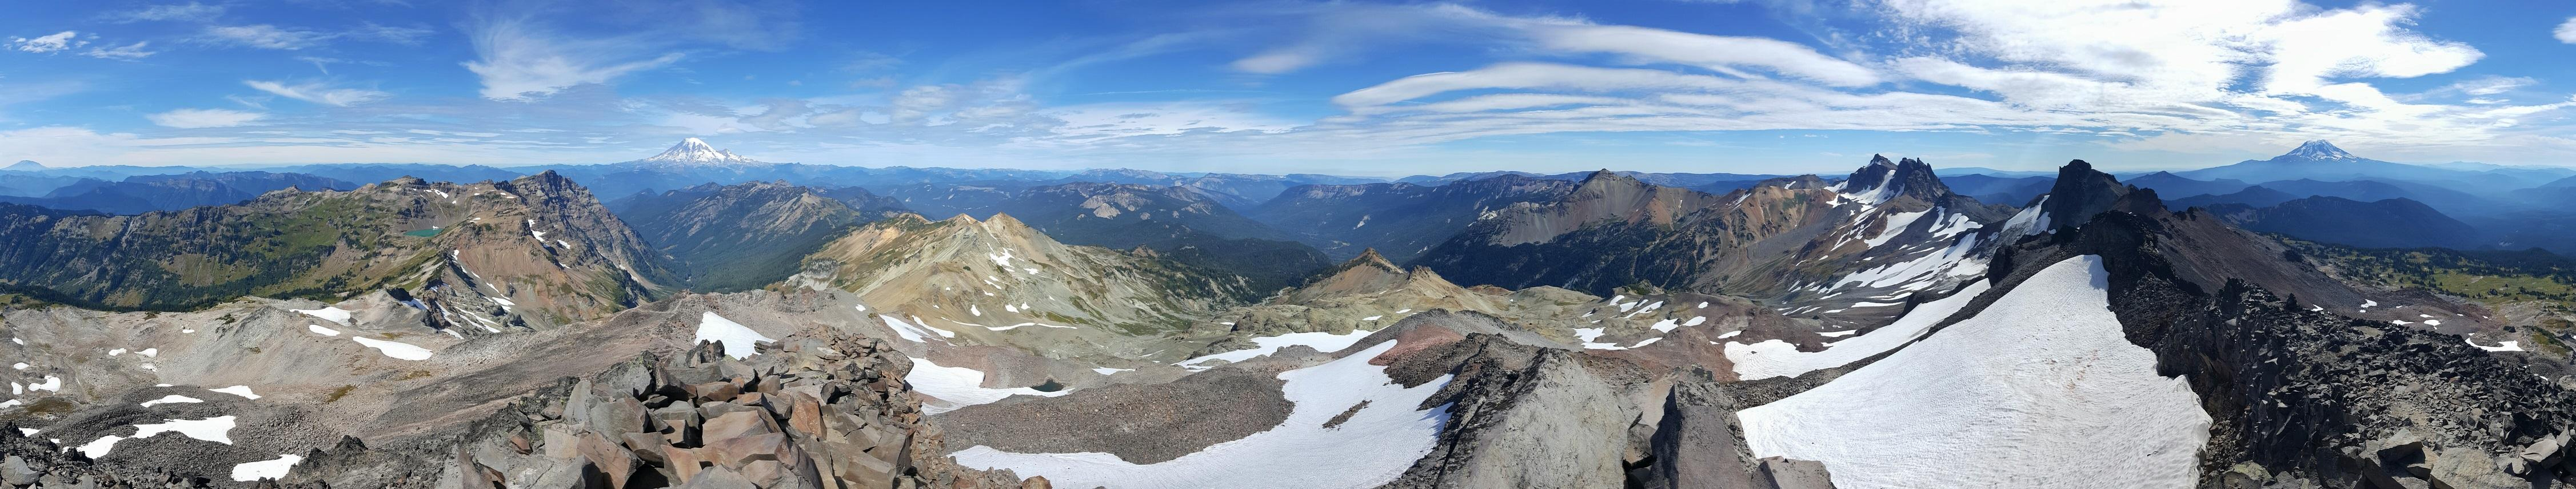 Old Snowy Summit Panorama